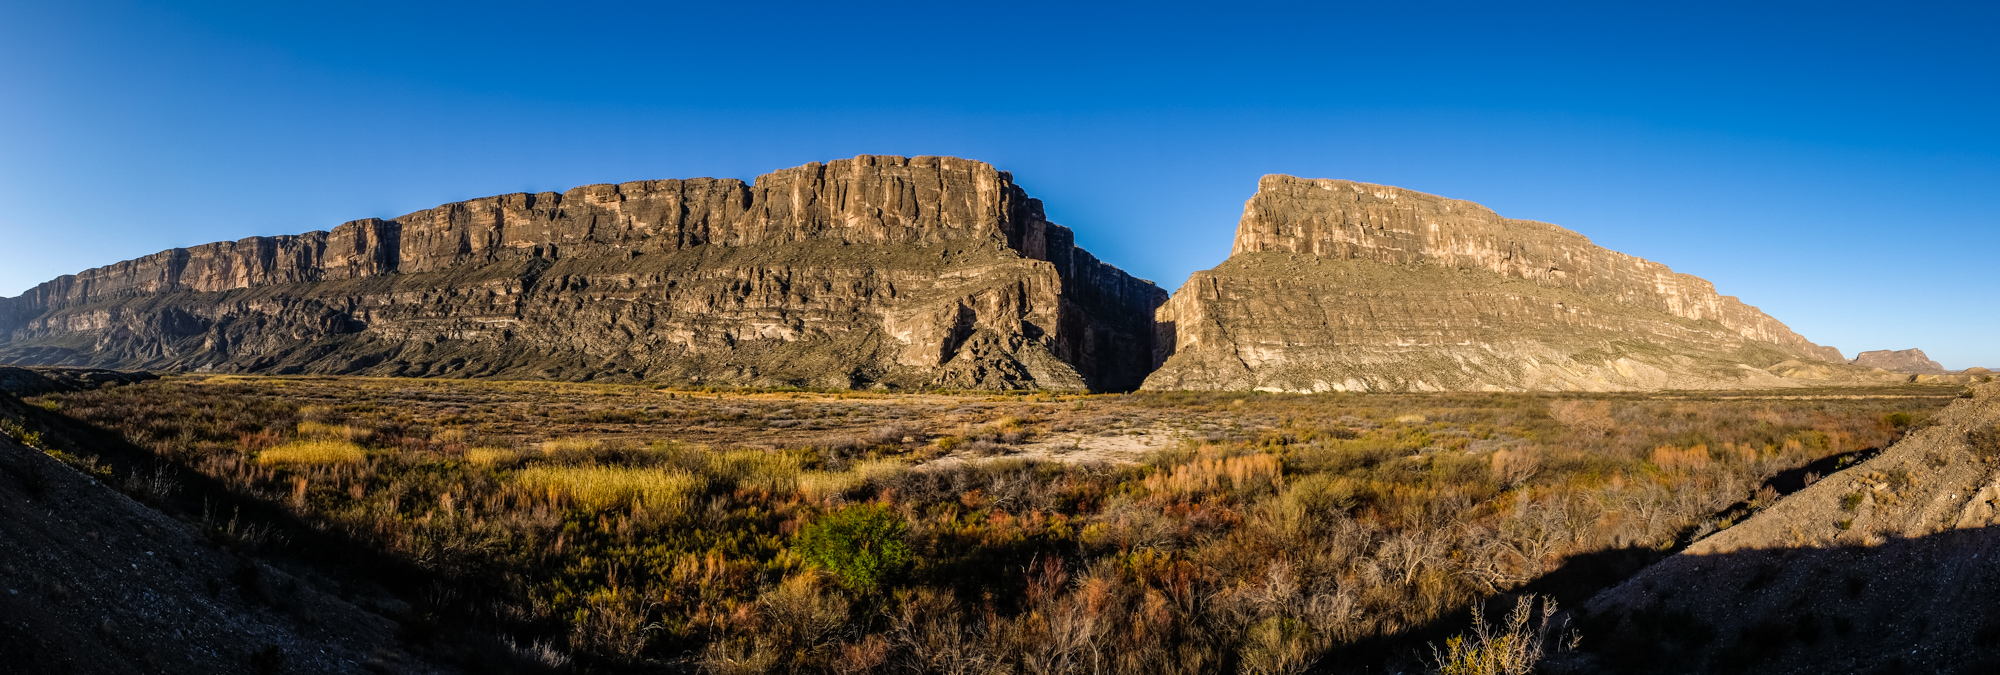 One of our first stops within the park was Santa Elena Canyon, where the Rio Grande cut through the rock long over time, dividing the US and Mexico. This is a panorama of the slit in the canyon.